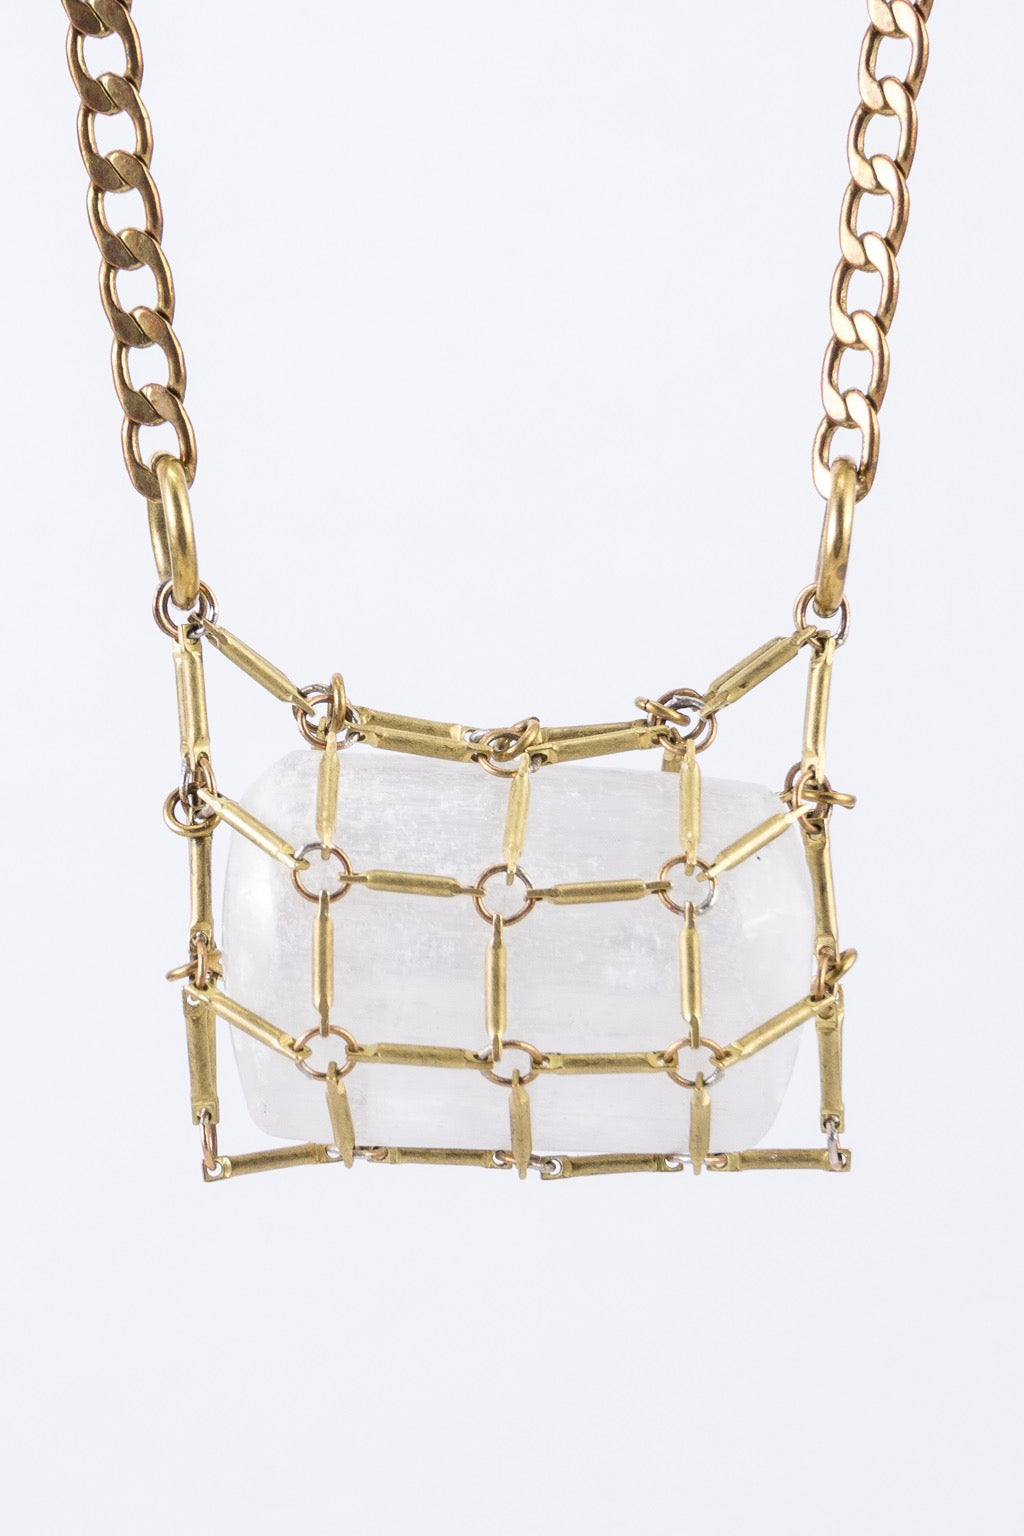 CRYSTAL in NET necklace